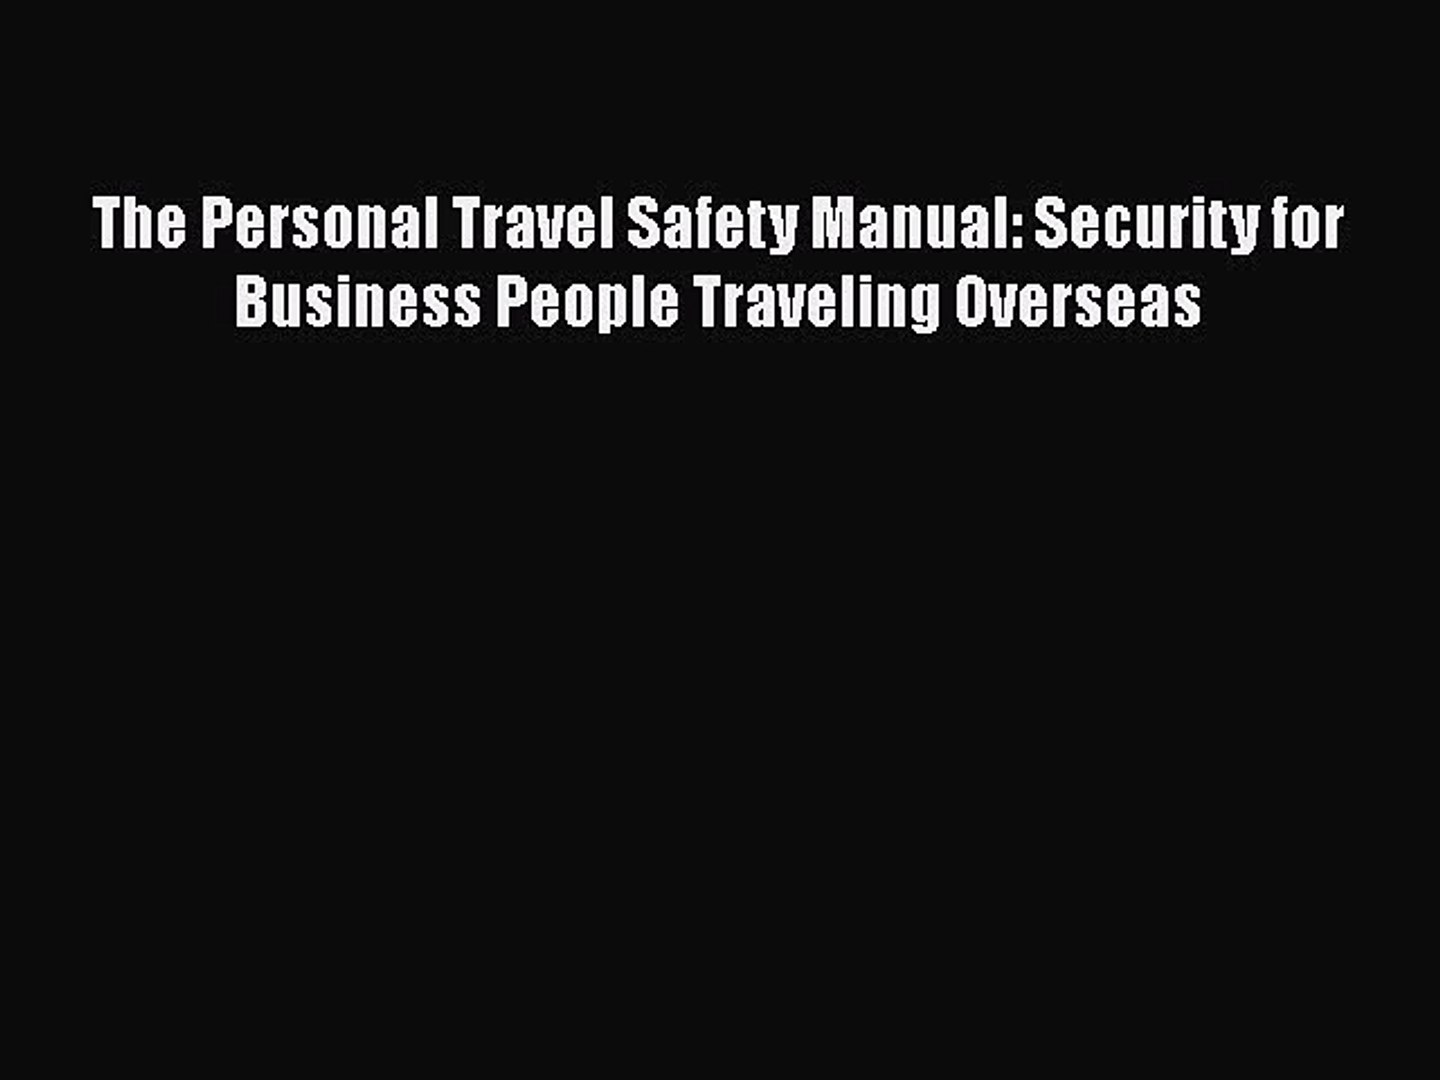 [PDF] The Personal Travel Safety Manual: Security for Business People Traveling Overseas Read